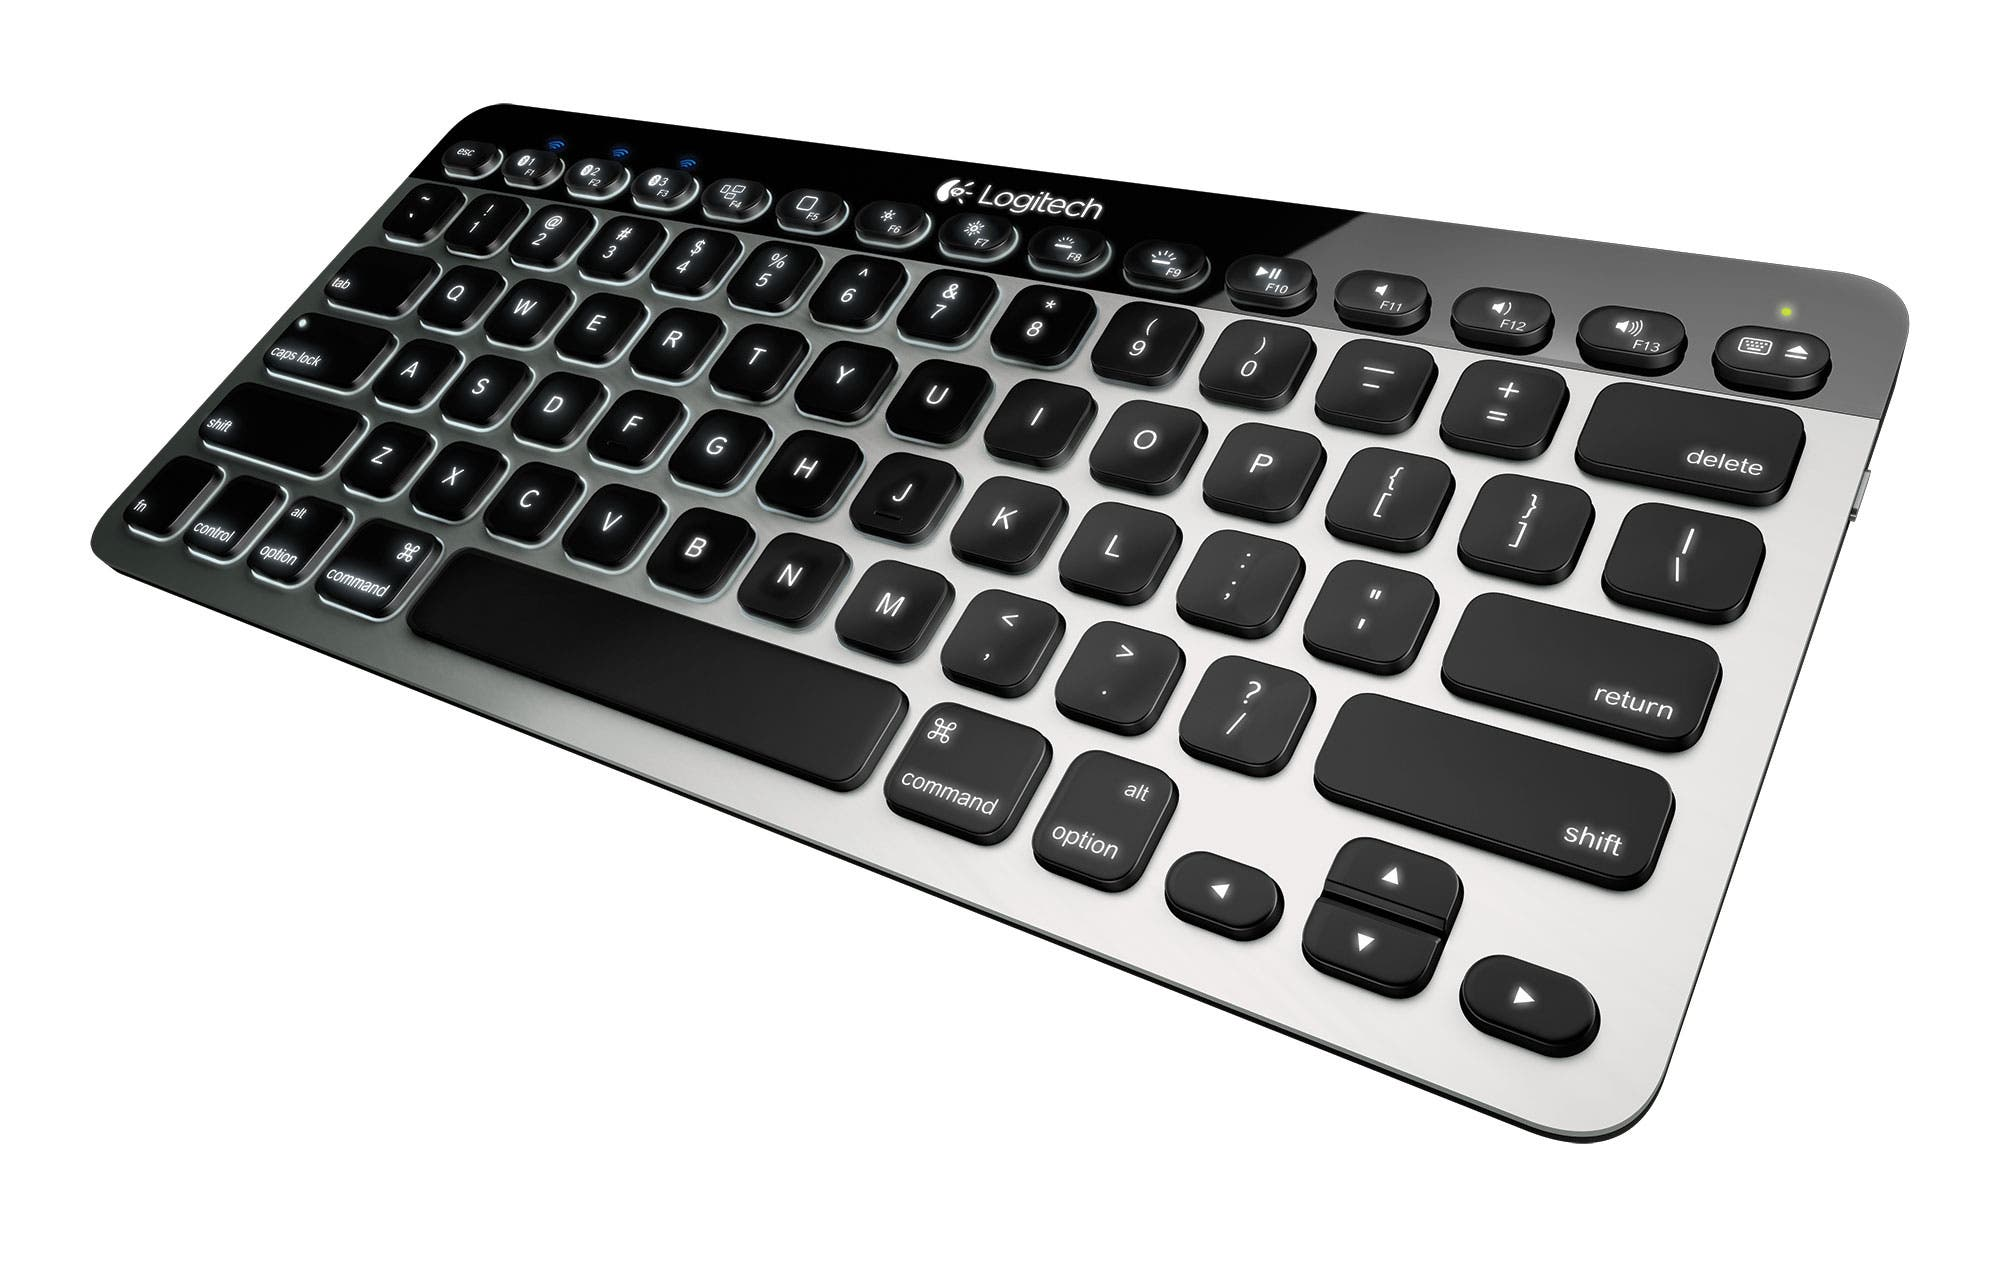 Bluetooth_Illuminated_Keyboard_FOB